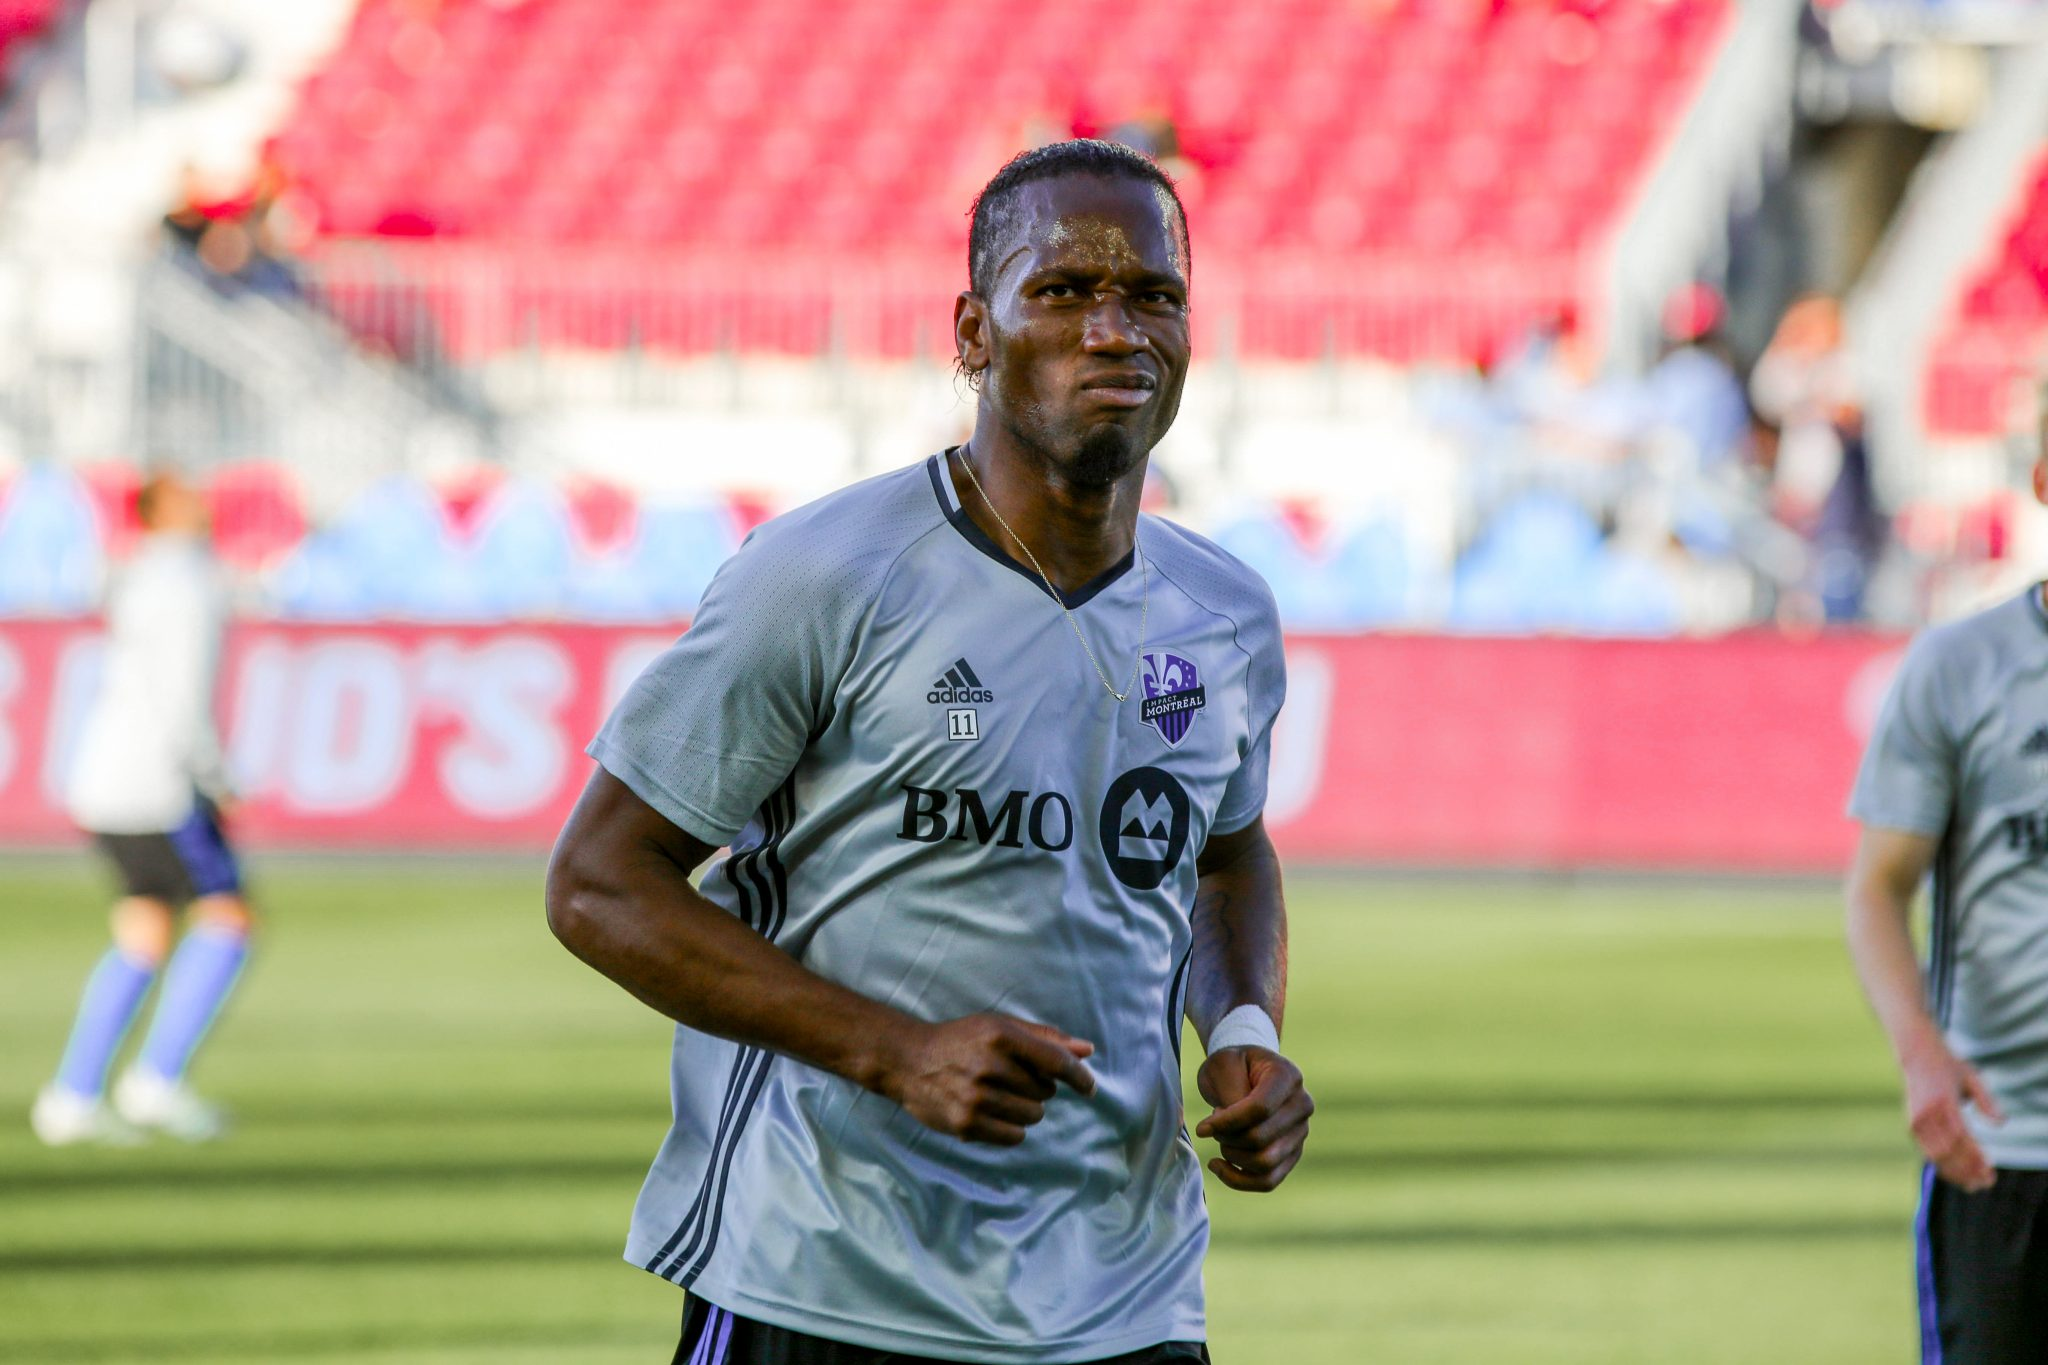 Didier Drogba during warmups at BMO Field. Luke Galati Photography